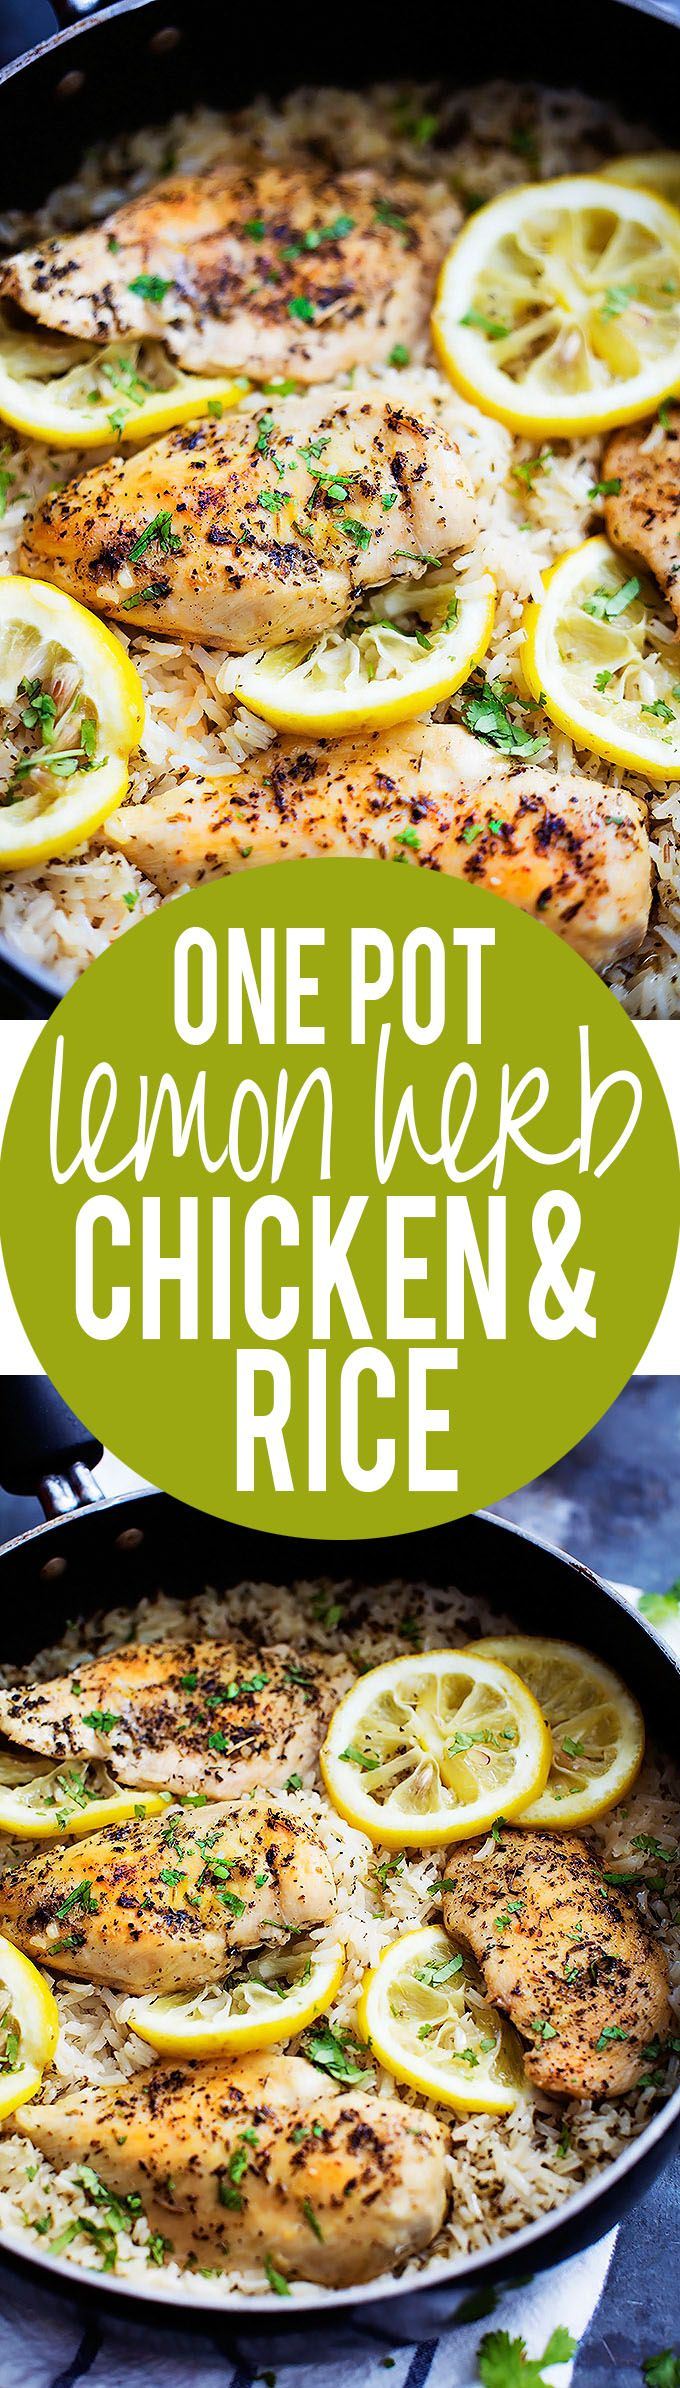 One Pot Lemon Herb Chicken & Rice | Creme de la Crumb. Sub garlic infused oil for butter & adjust seasoning to make fodmap friendly.